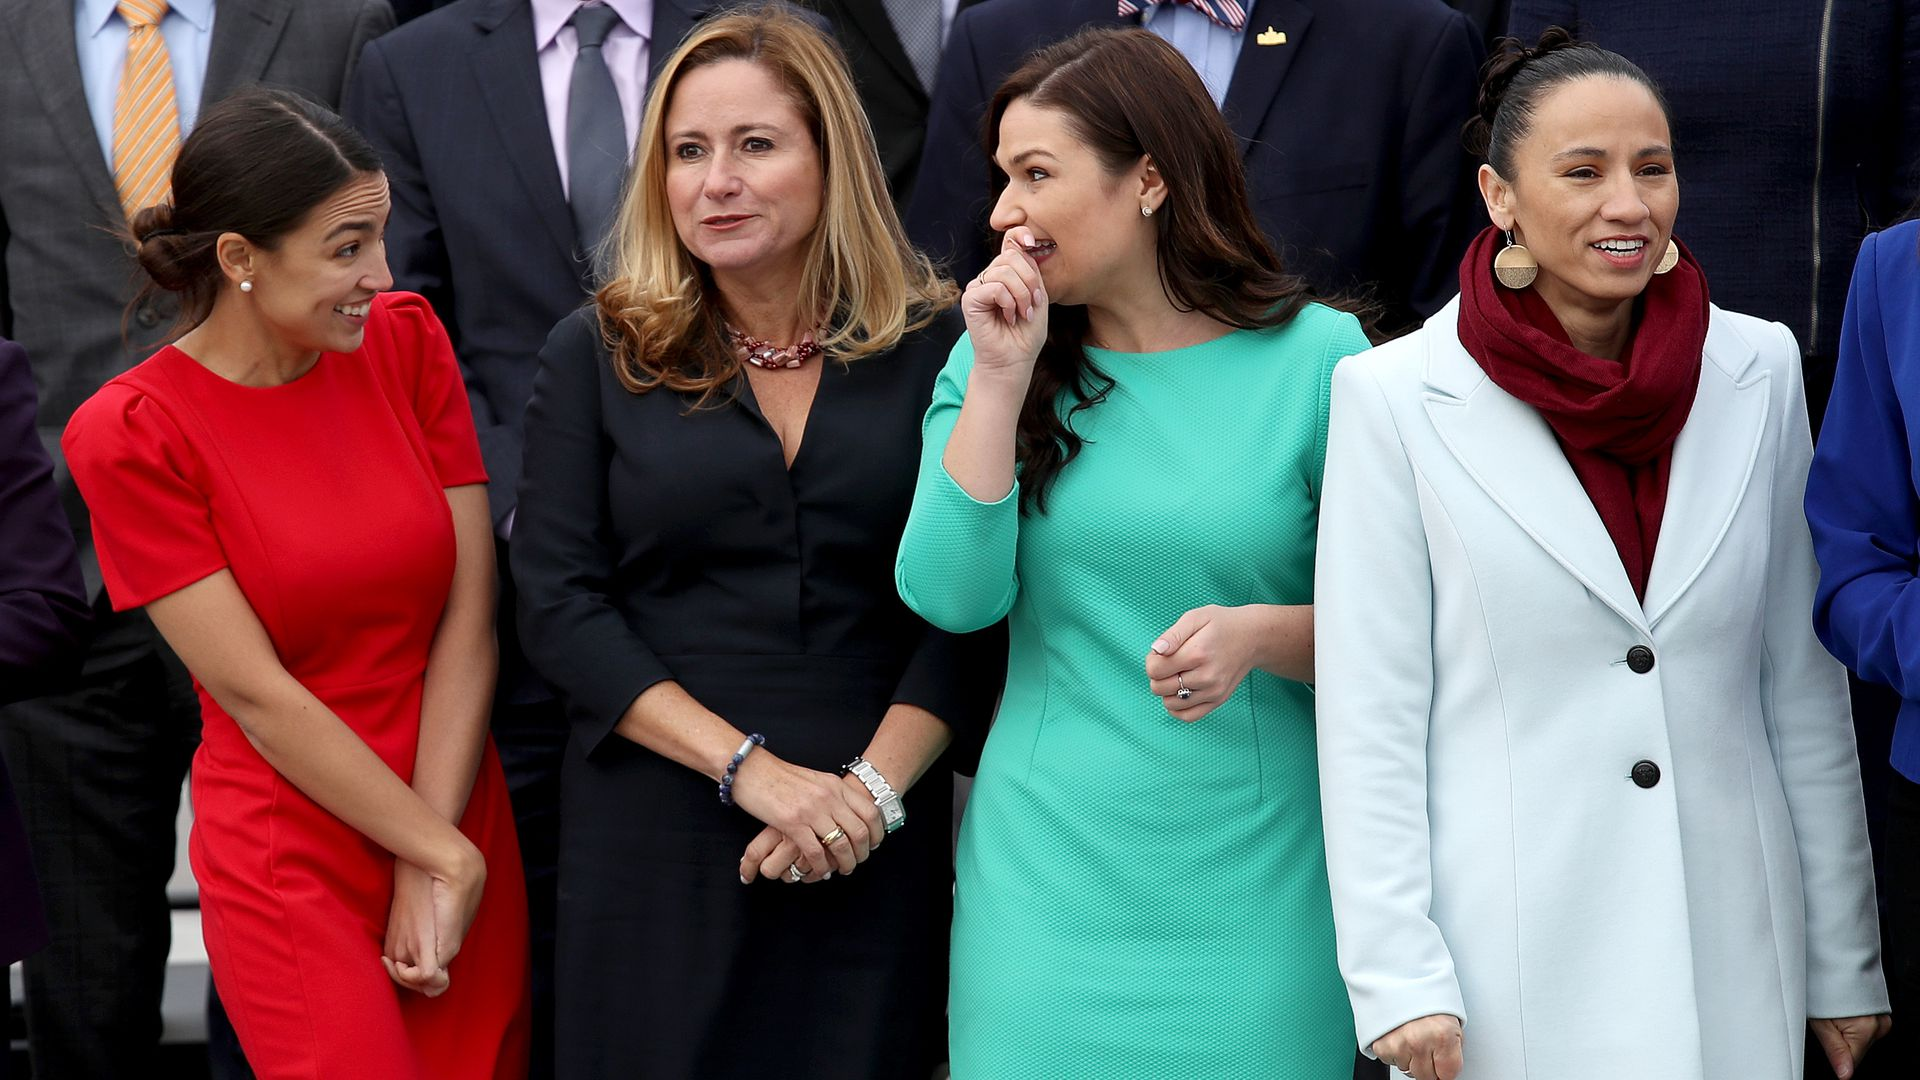 Alexandria Ocasio-Cortez, Debbie Mucarsel-Powell, Abby Finkenauer, and Sharice Davids pose for a picture at the U.S. Capitol.